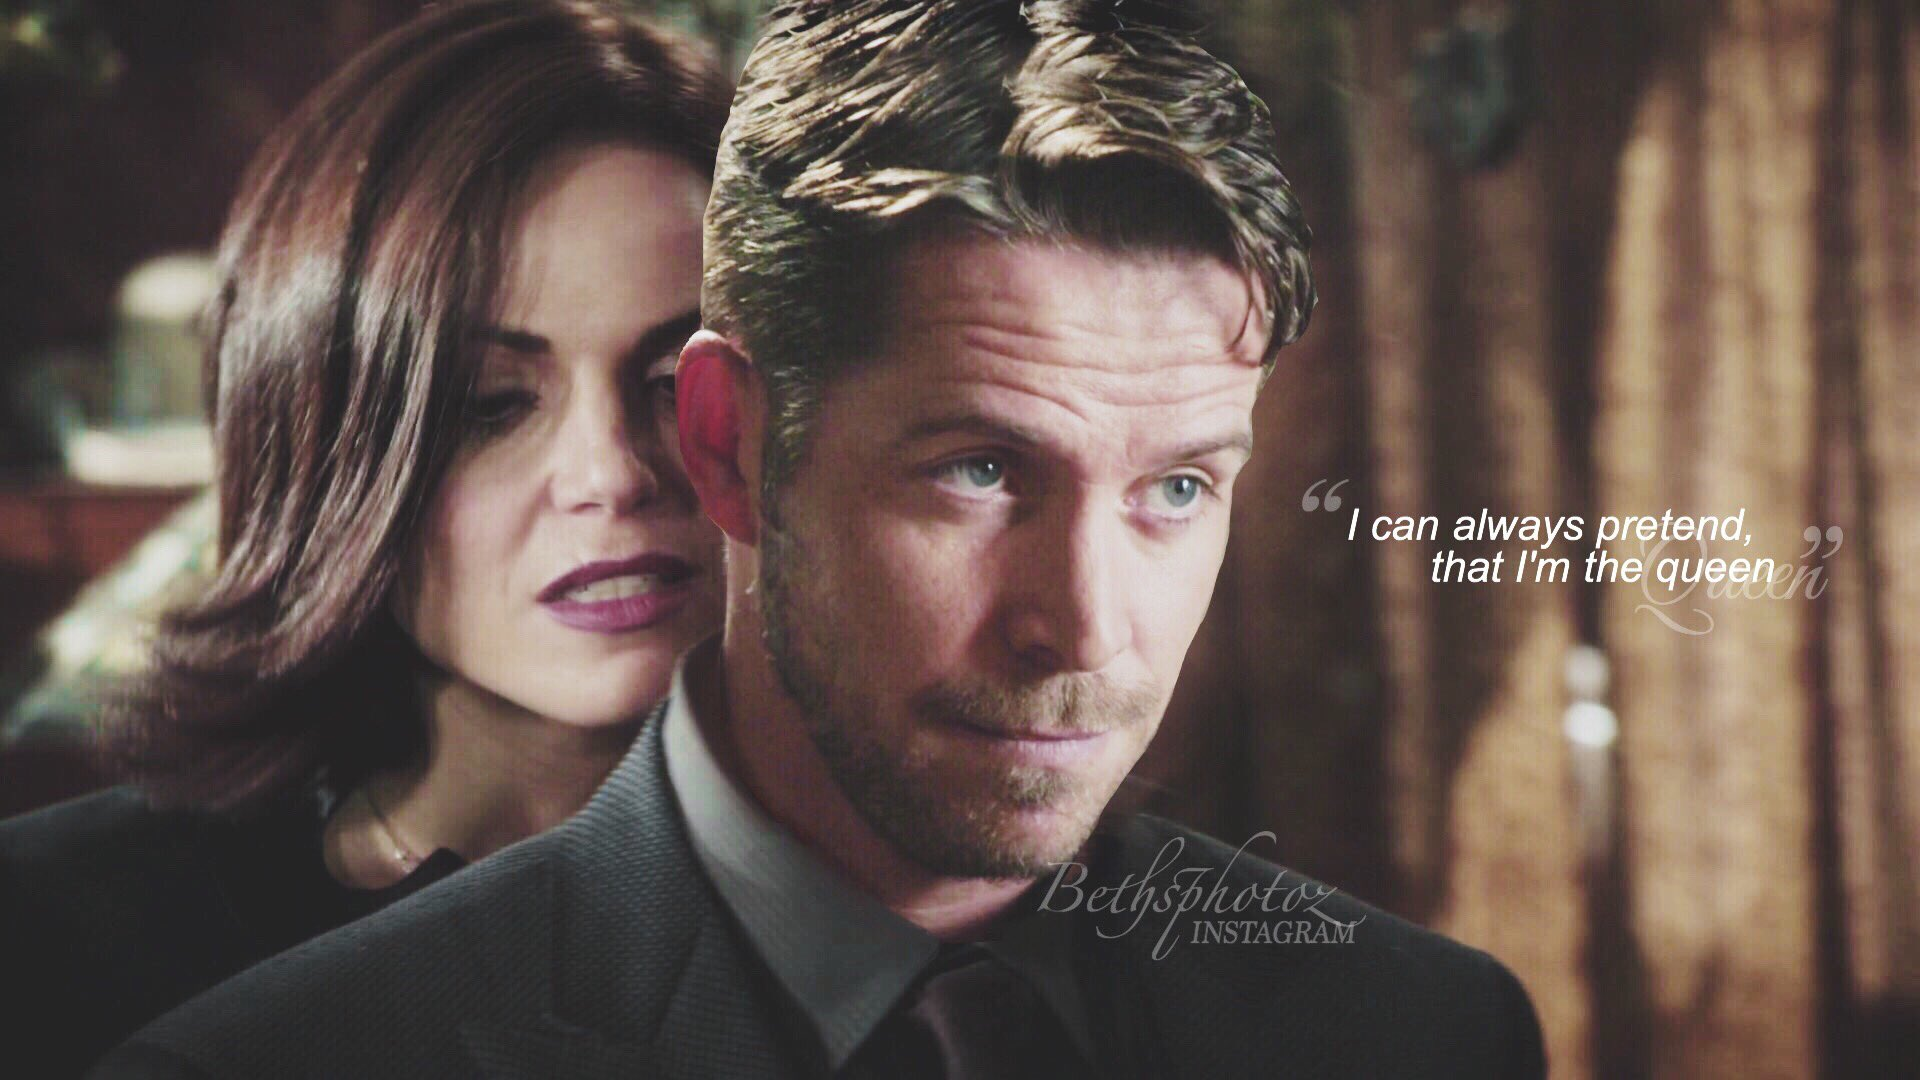 Le Outlaw Queen - Page 21 CxQA73pW8AE2Q95